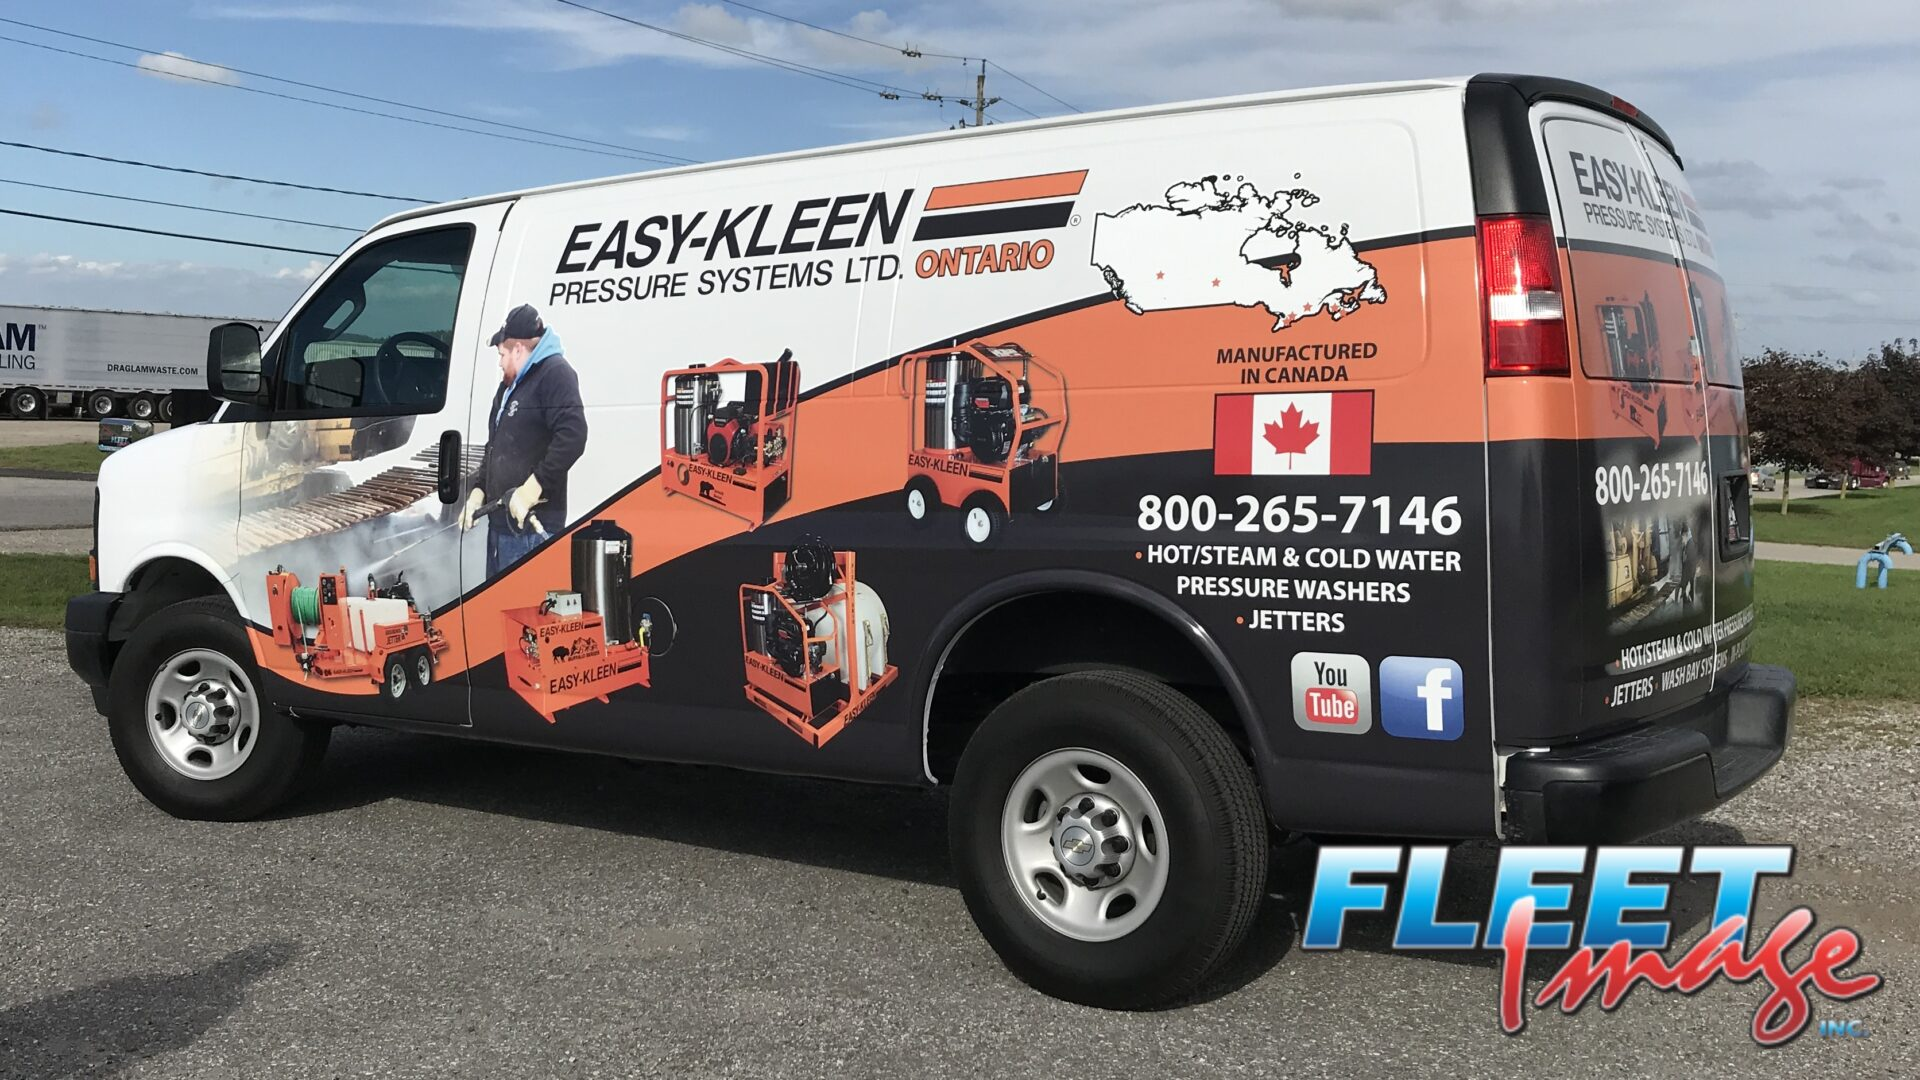 Vehicle with an EASY-KLEEN PRESSURE SYSTEMS LYD. ONTARIO decal sticker